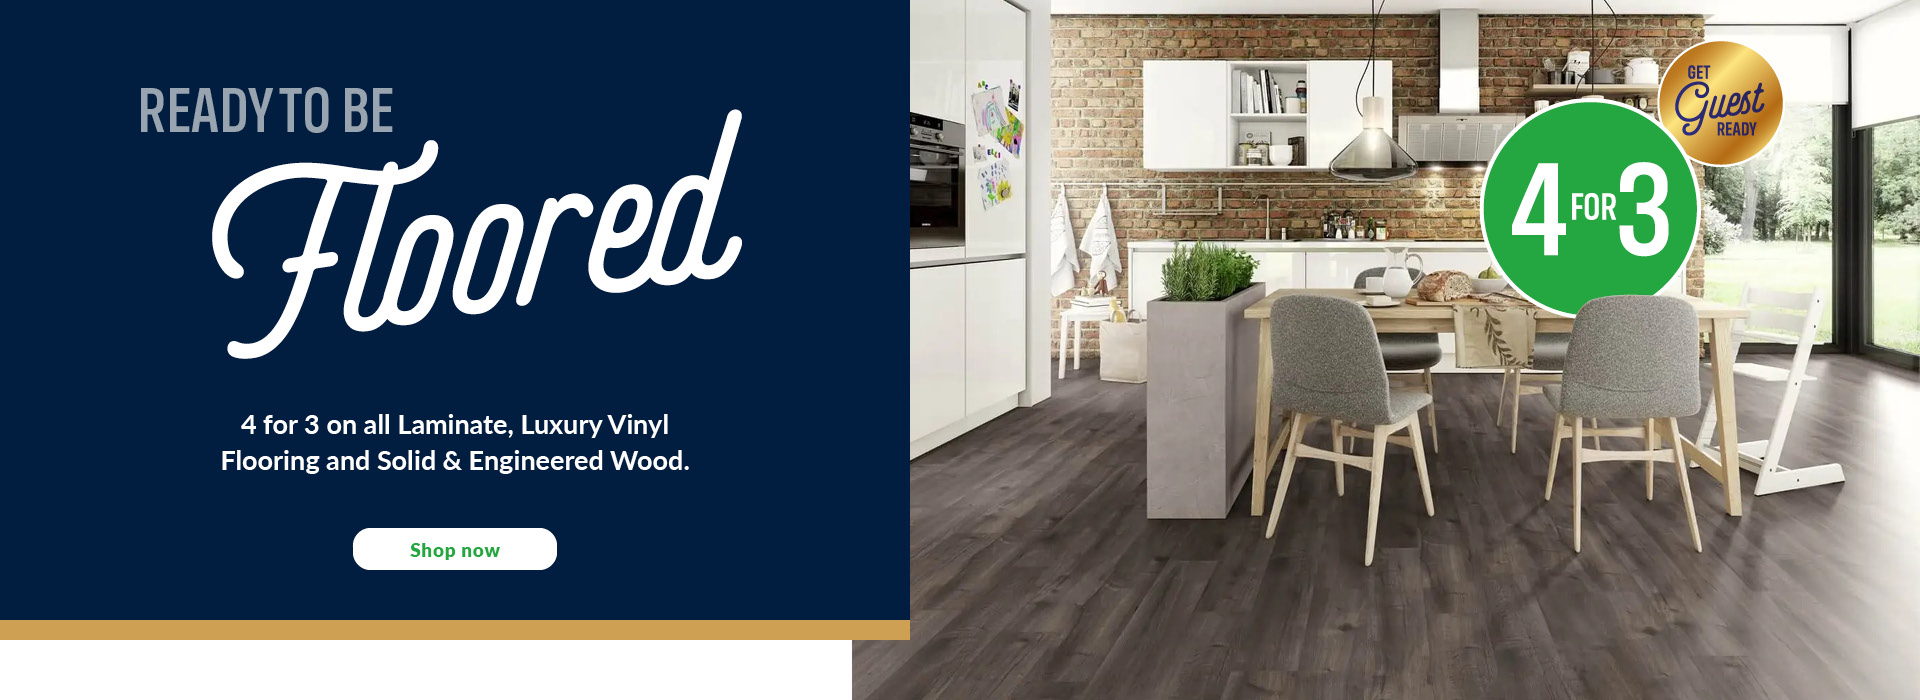 4-for-3-on-all-laminate-luxury-vinyl-tiles-and-solid-engineered-flooring